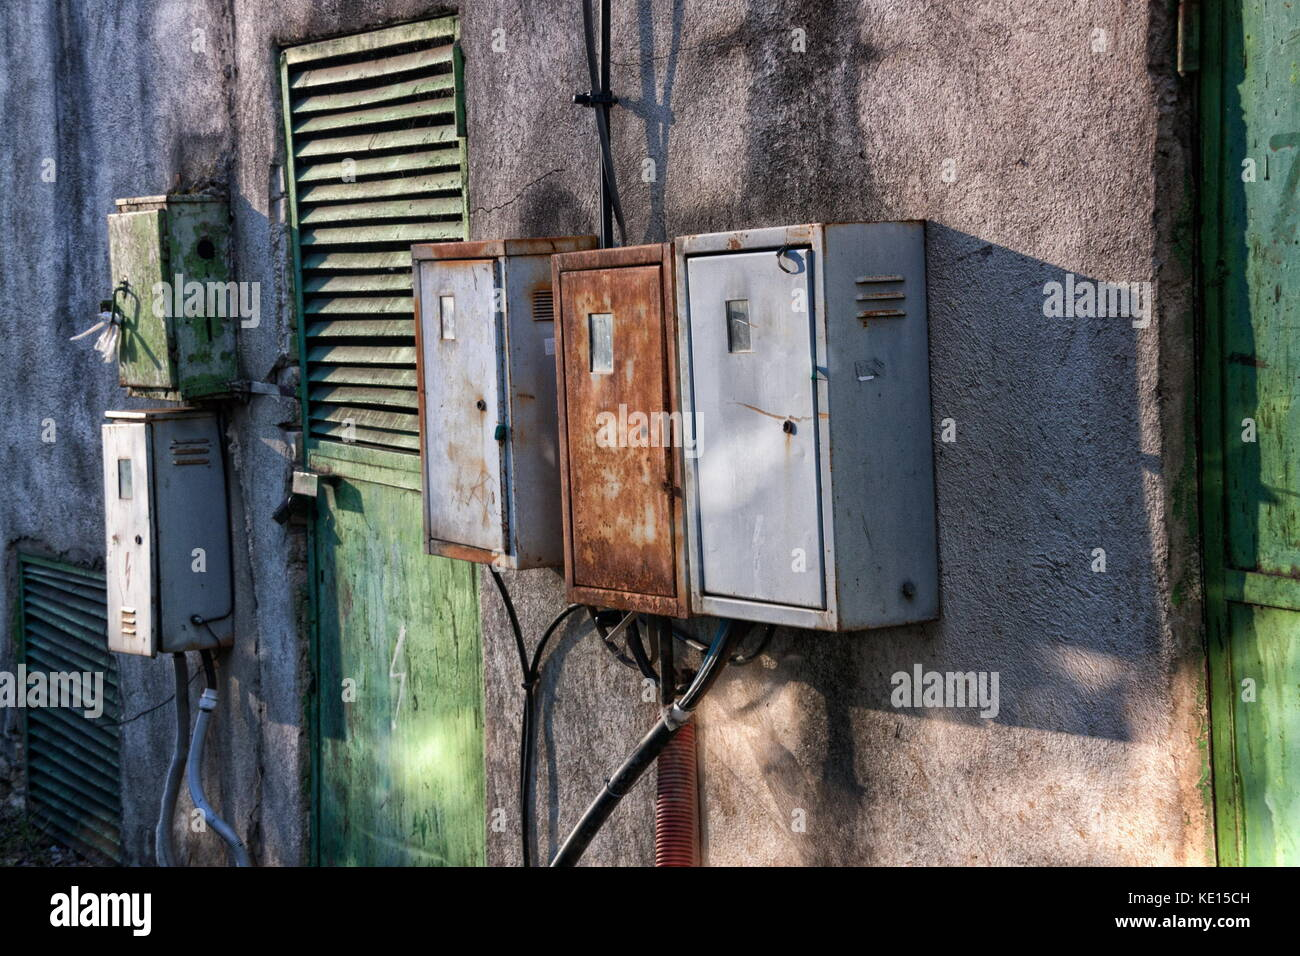 Old Fuse Boxes Stock Photos Images Alamy Fashion Box And Rusty Electricity Outdoors Image